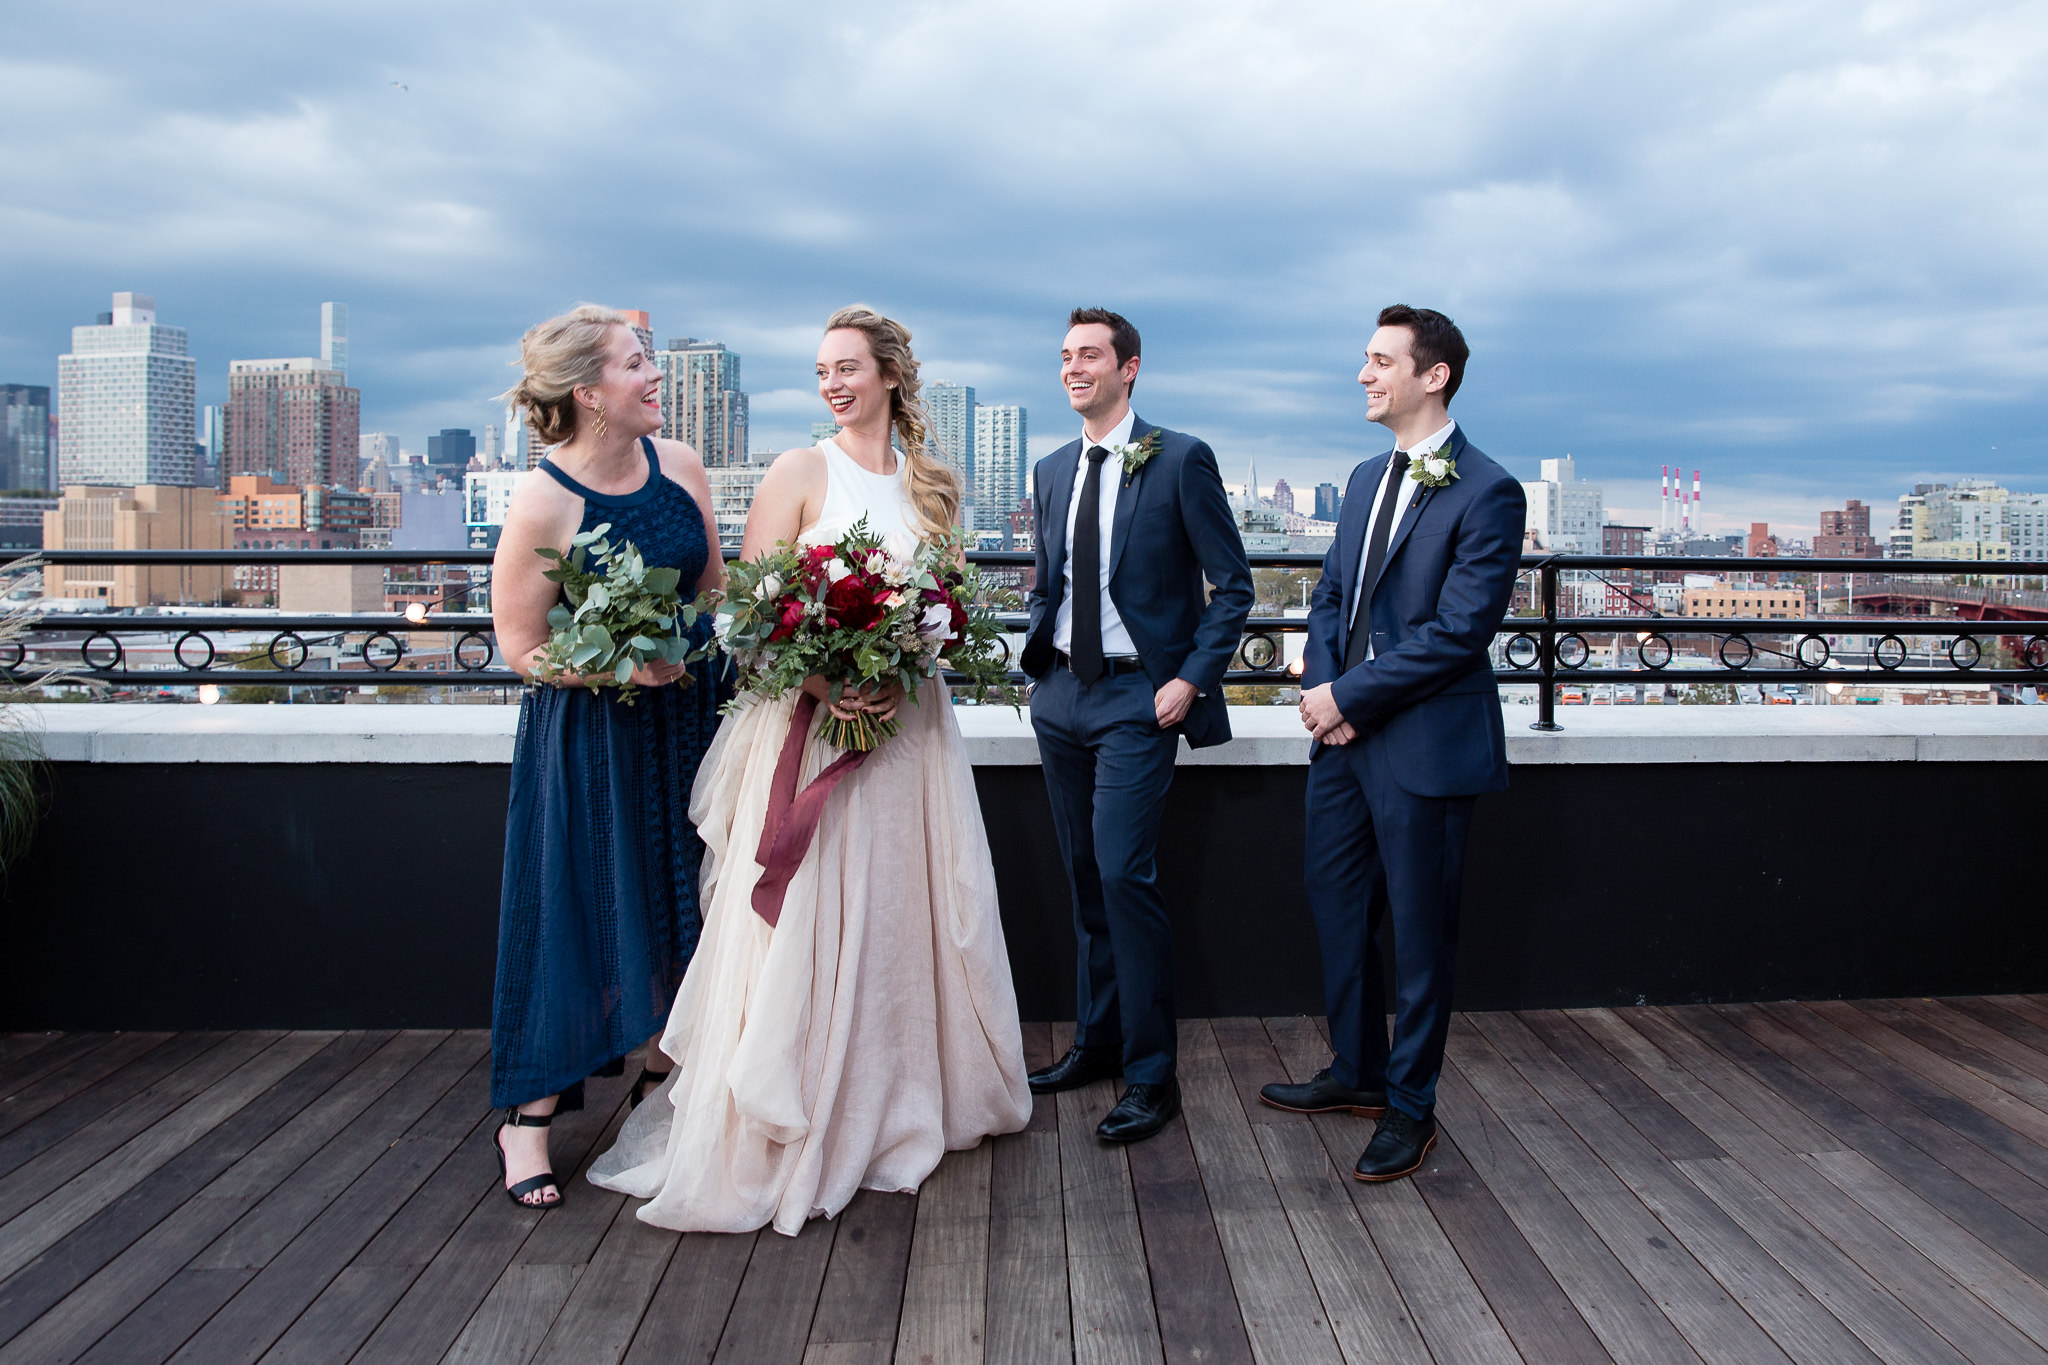 Brooklyn rooftop wedding party formal portrait